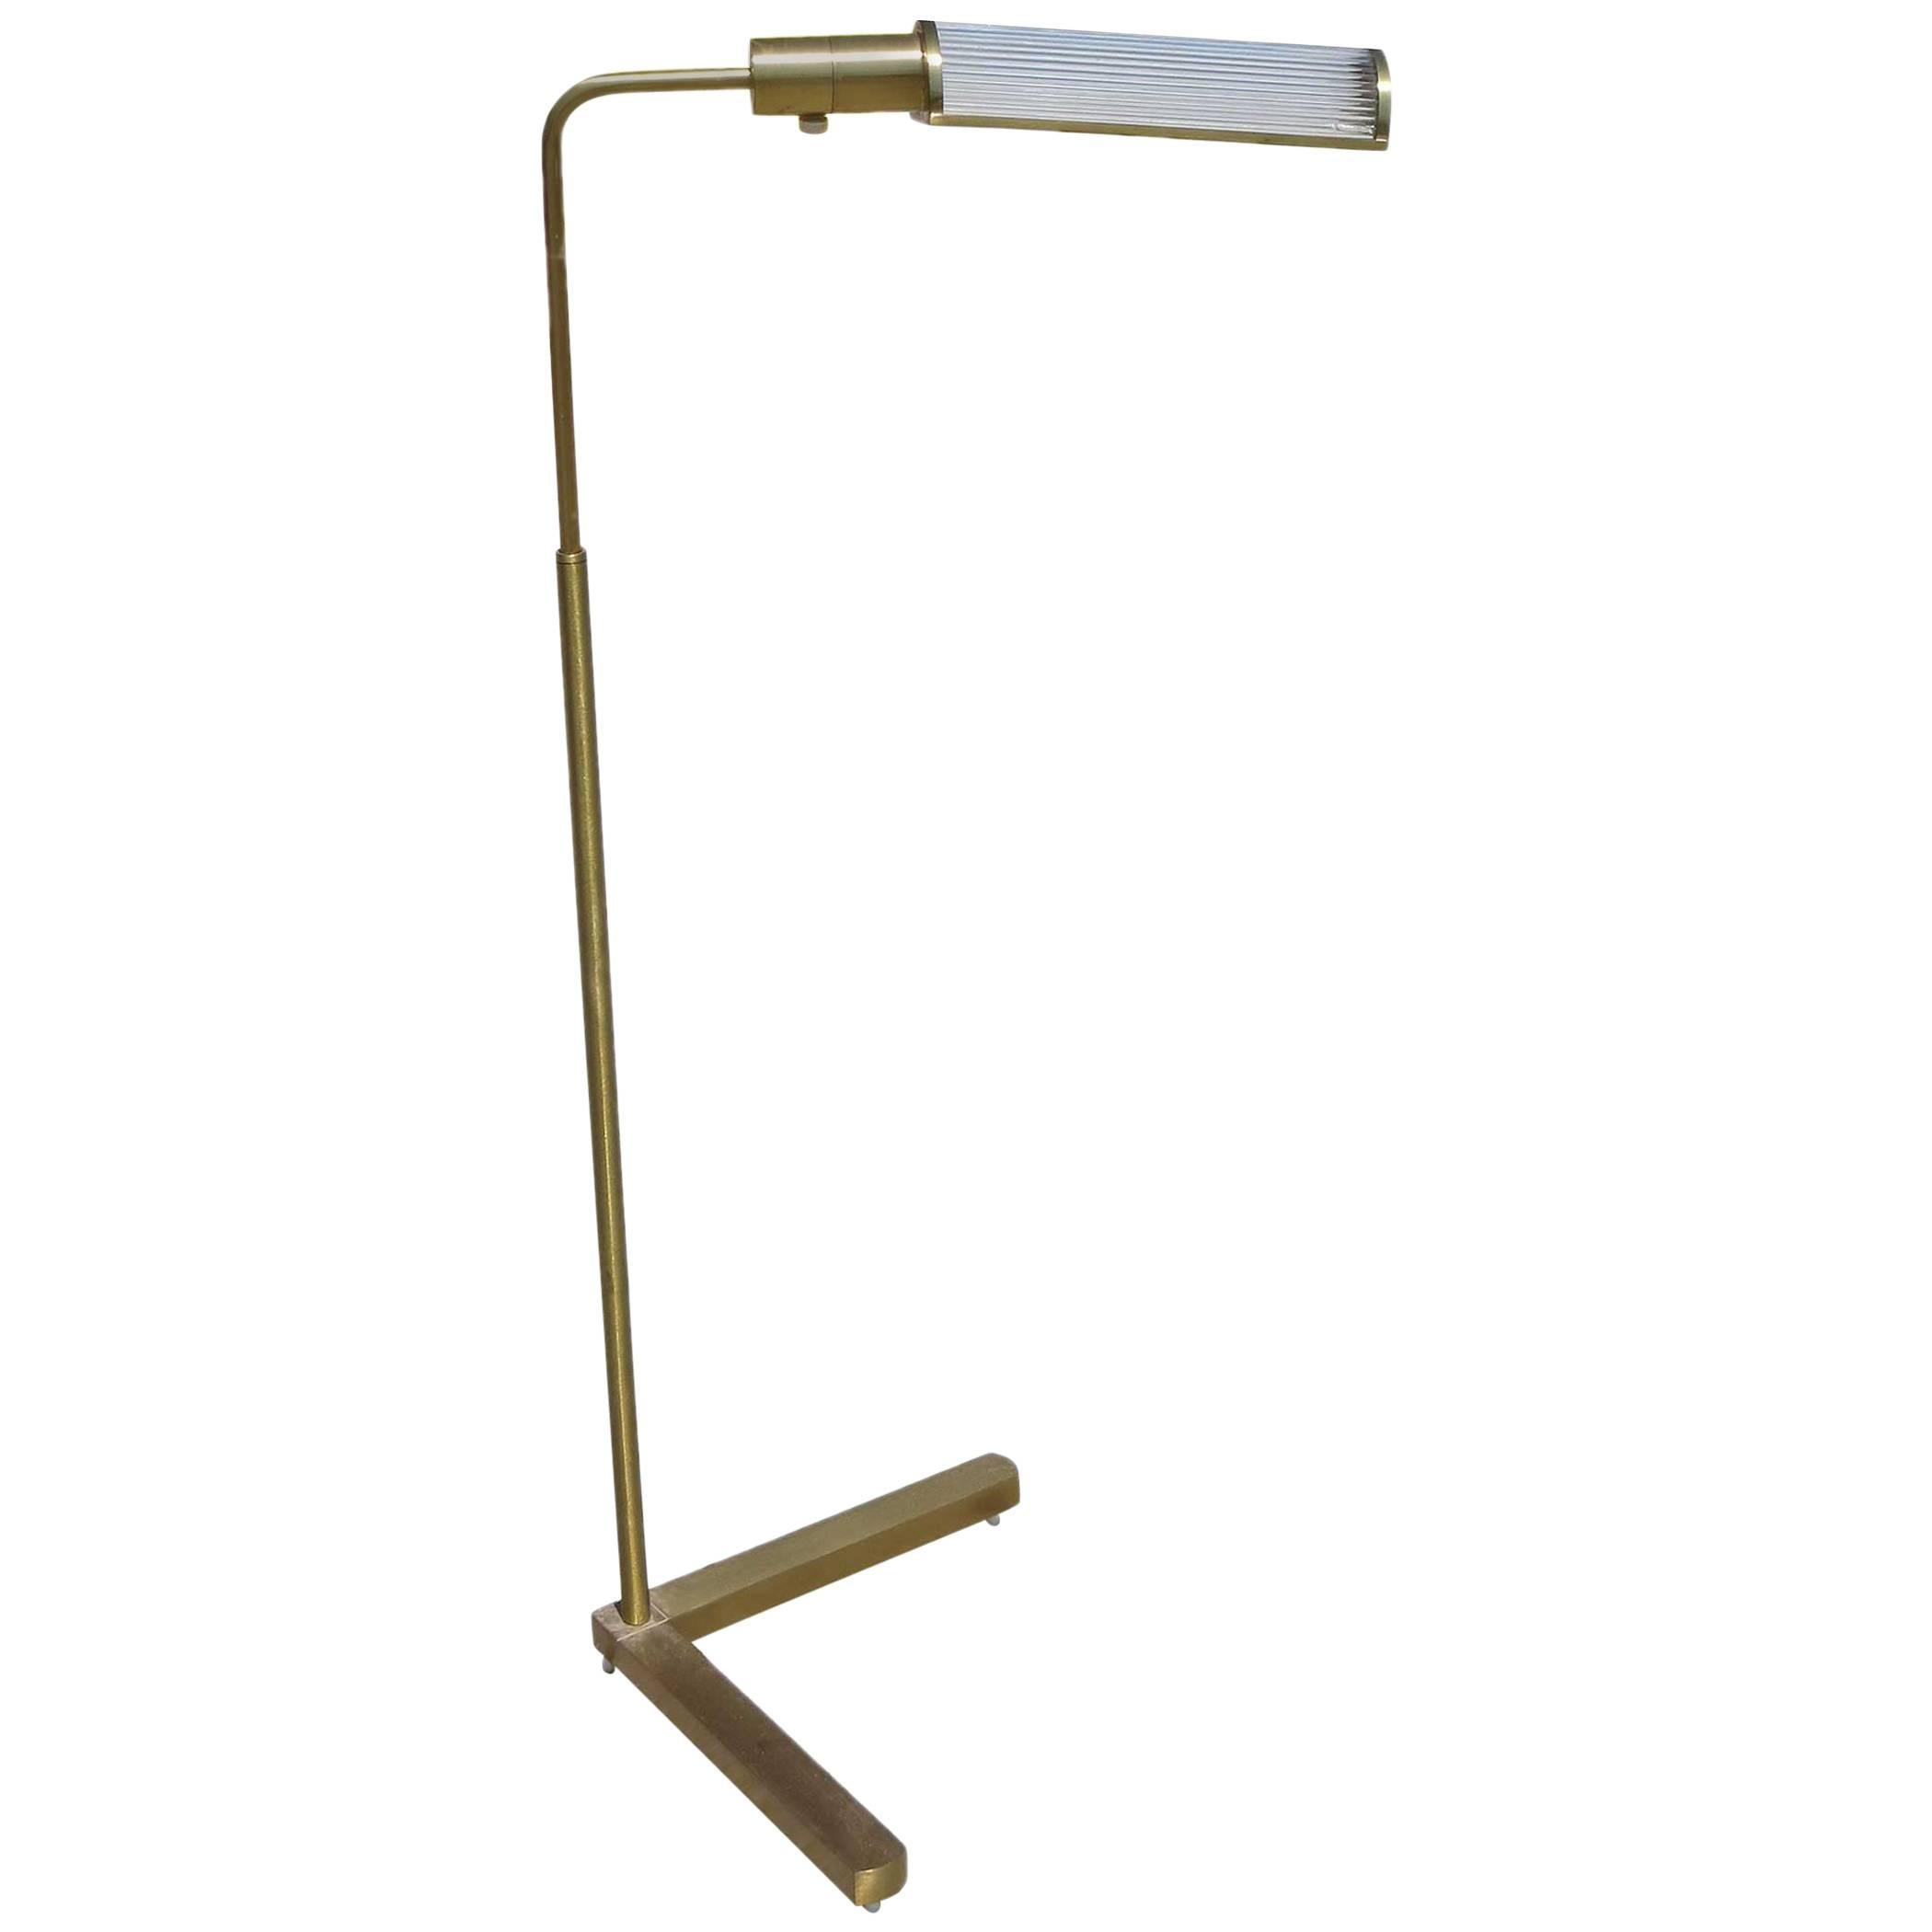 Brass Pharmacy Floor Lamp with Glass Rod Shade by Casella